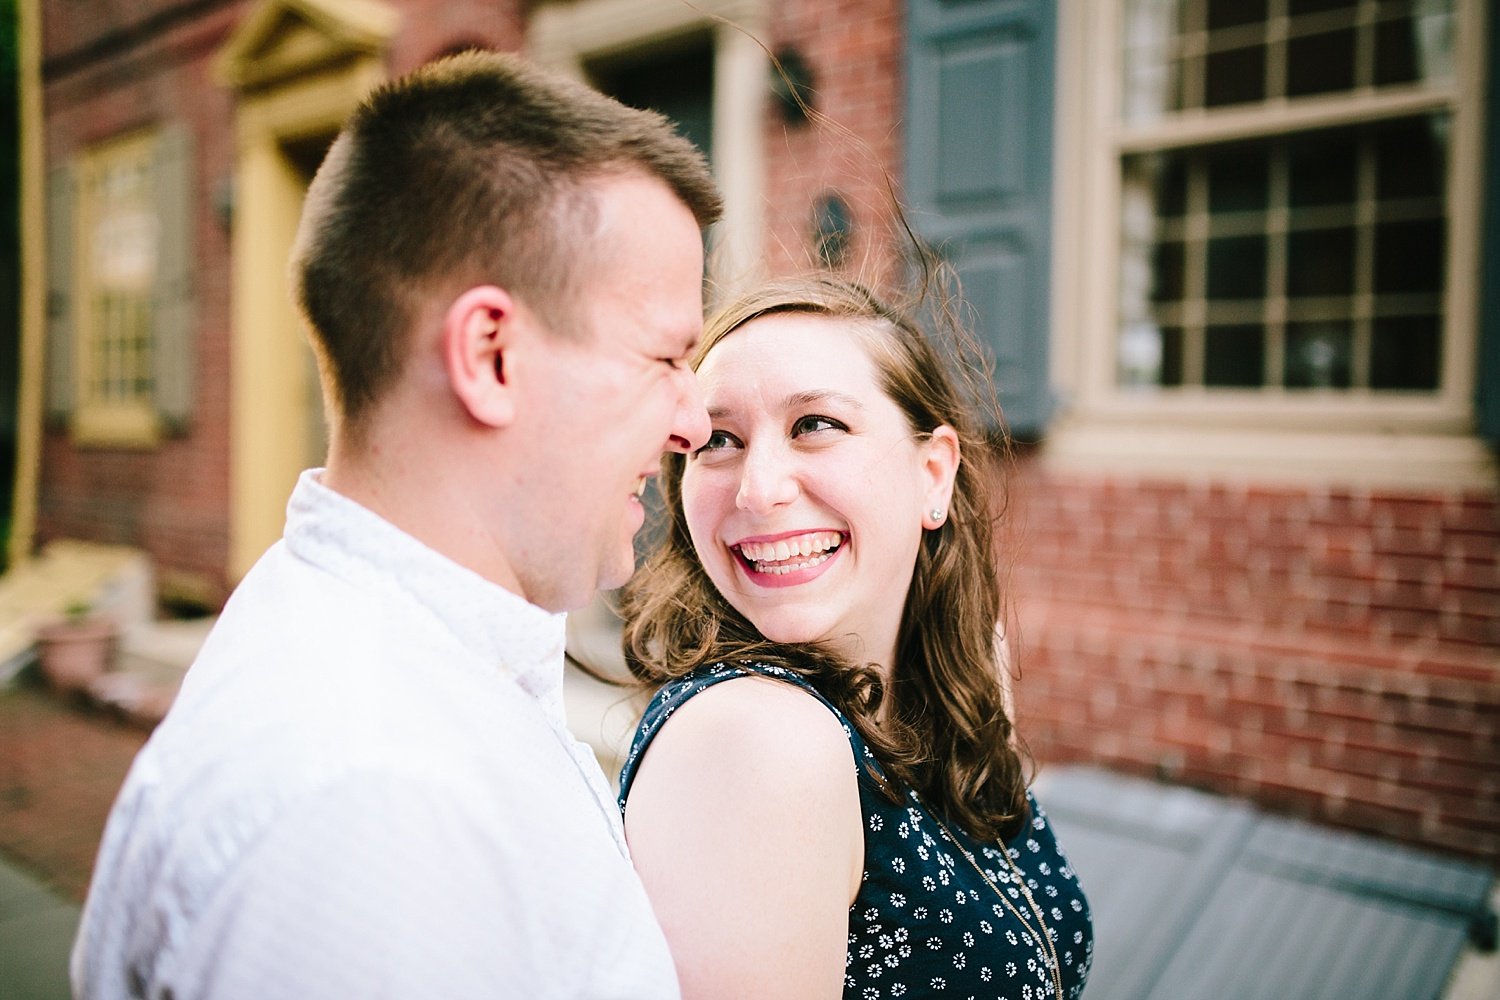 lizandbrandon_oldcity_philadelphia_elfrethsalley_engagement_session_image007.jpg